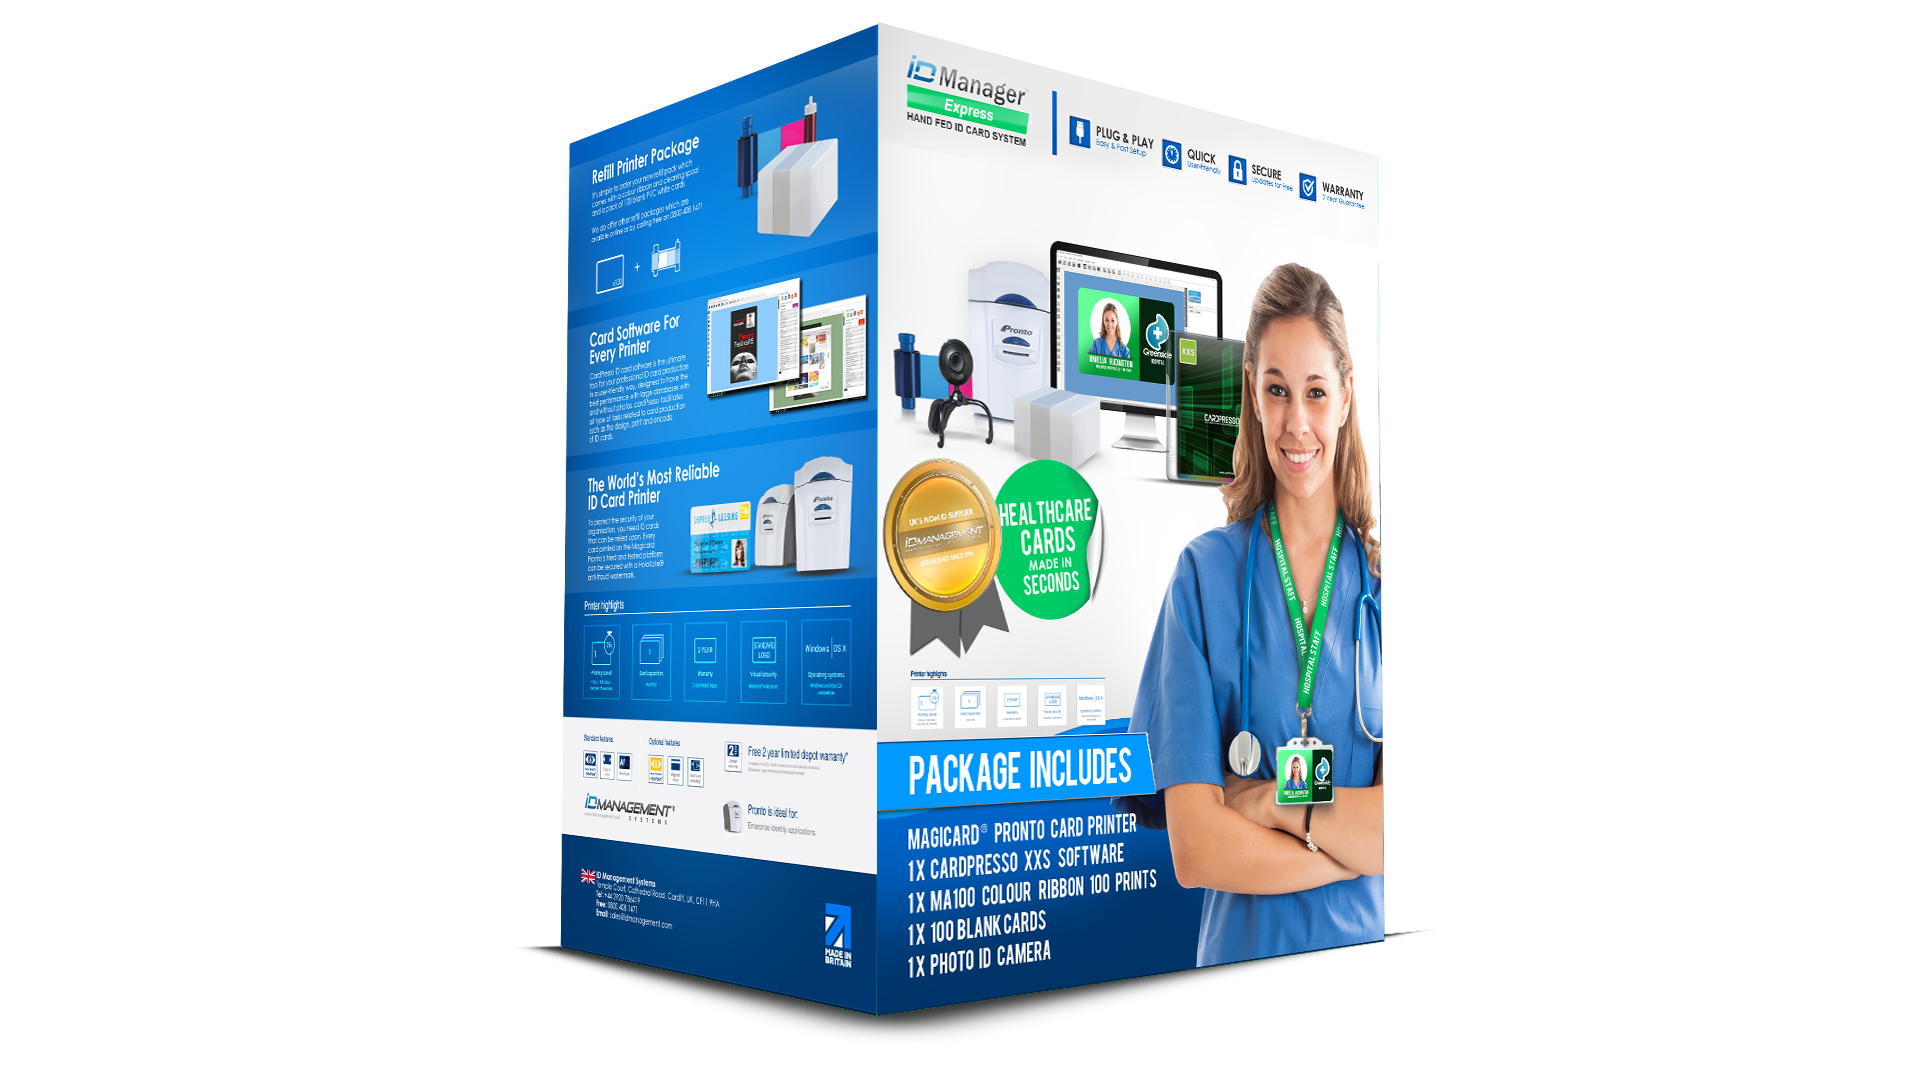 ID Manager Healthcare ID Card System - Magicard Pronto